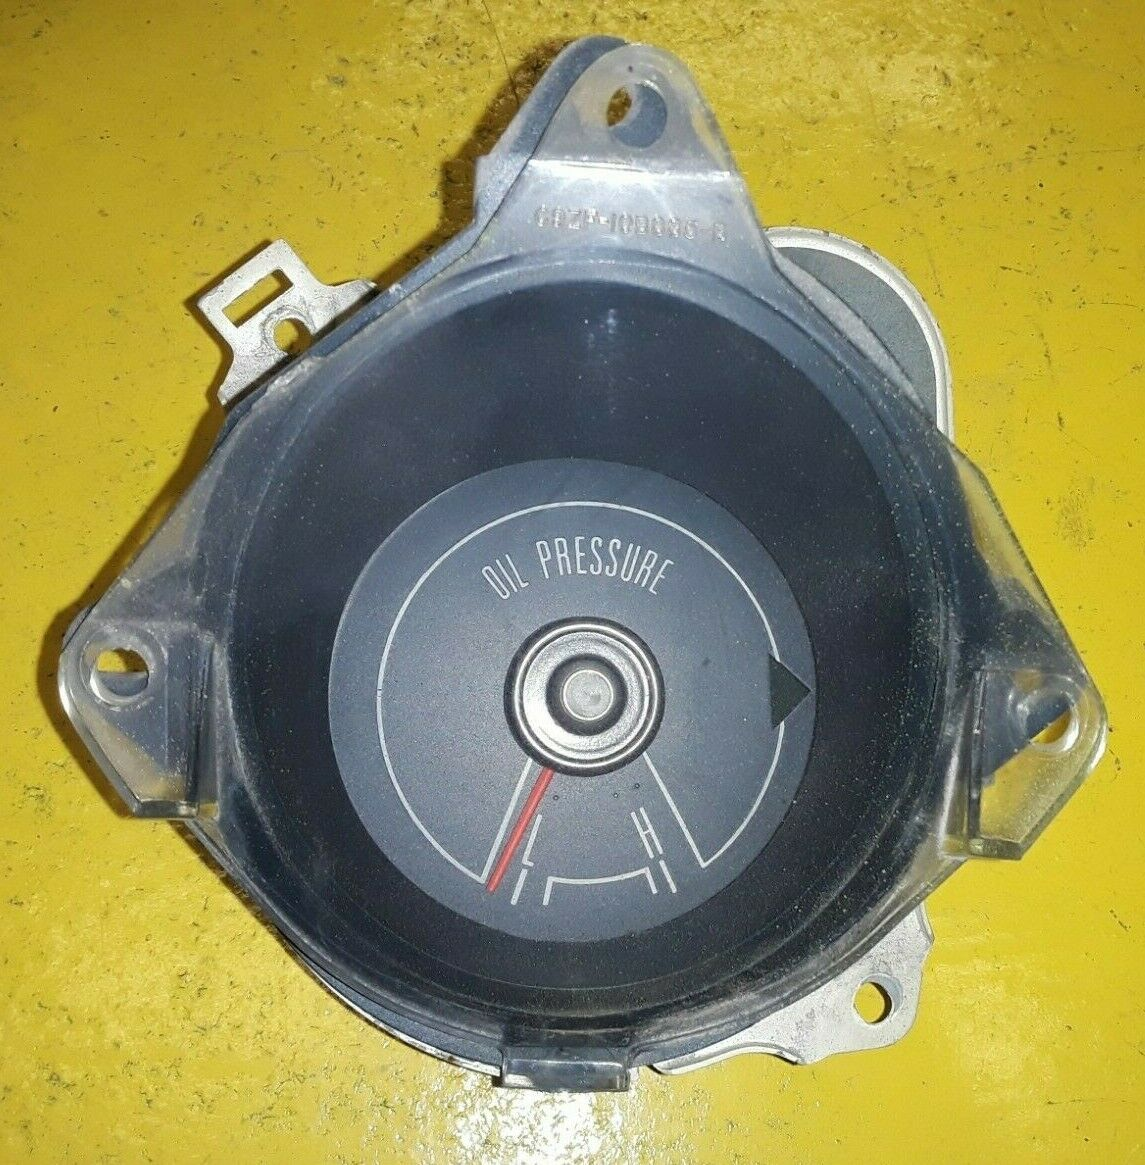 OEM FORD 1969-1970 MUSTANG OIL PRESSURE GAUGE C9ZF-9B309-A ASSEMBLY